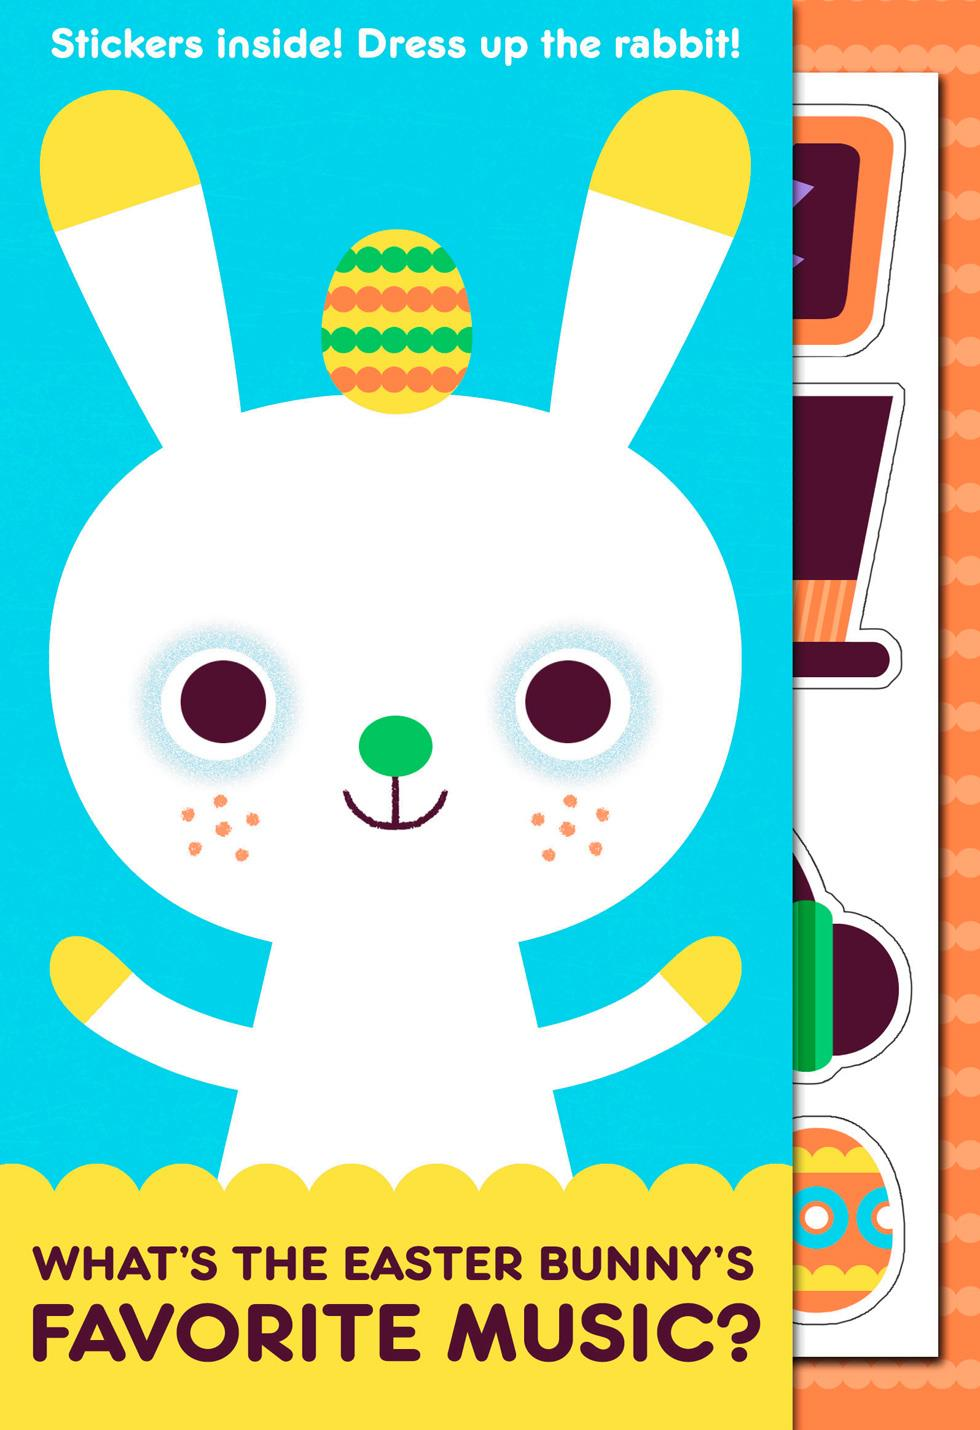 Easter cards hallmark hip hop bunny joke kids easter card with stickers m4hsunfo Image collections